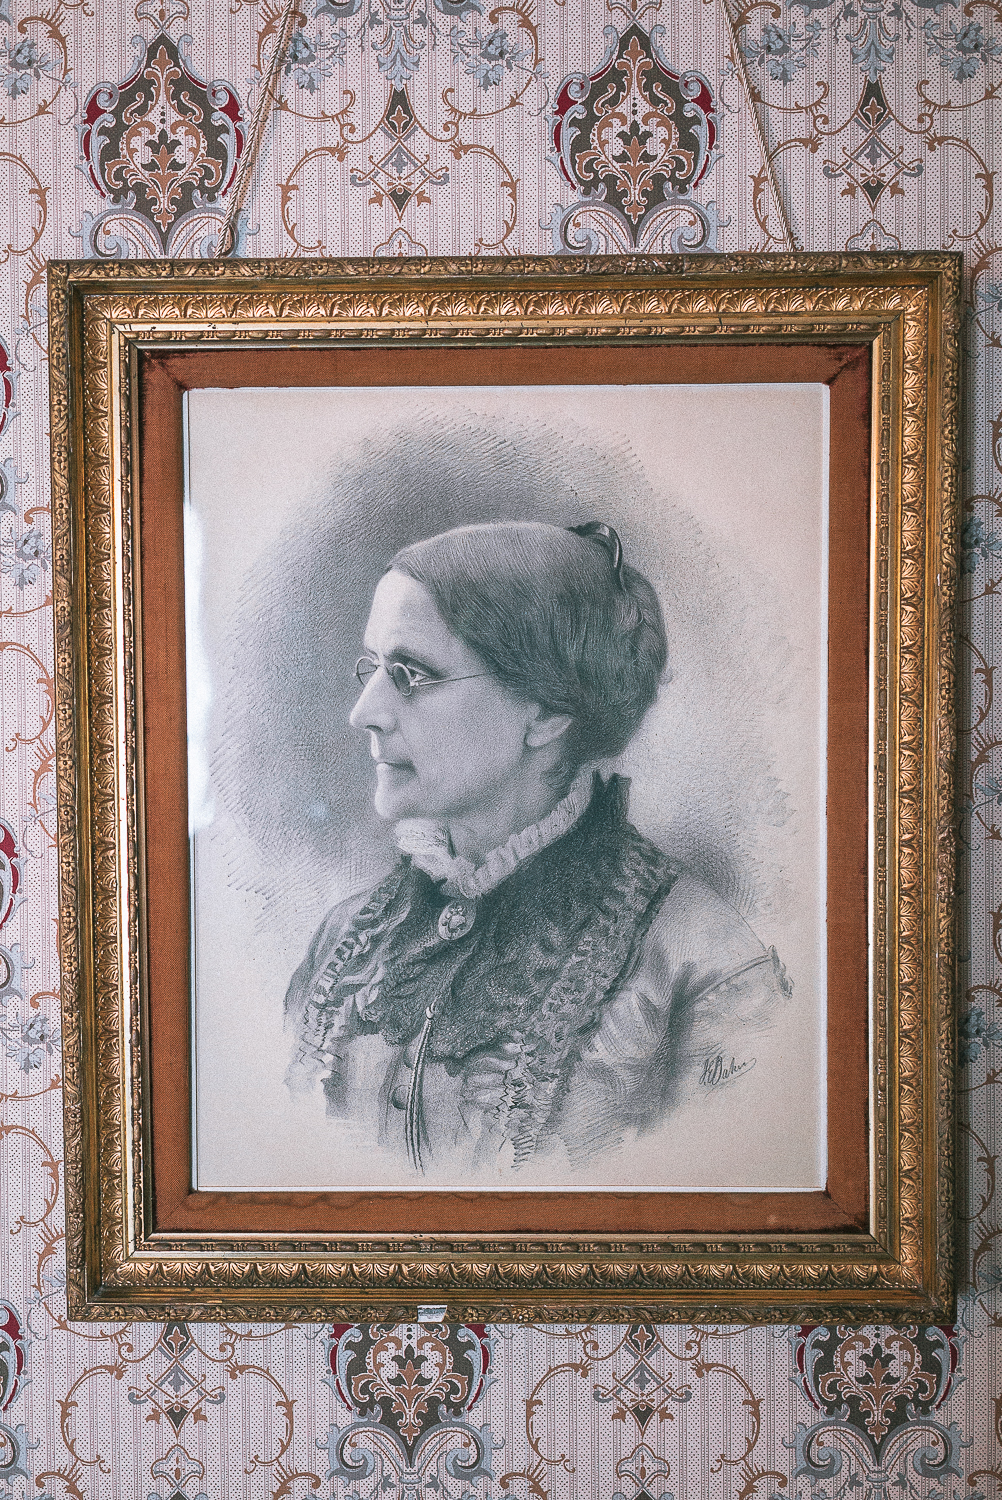 - Meet one of the most influential & impactful reformers in American history; from labor reform to women's suffrage Susan B. Anthony gave it her all to make a change that would last forever!